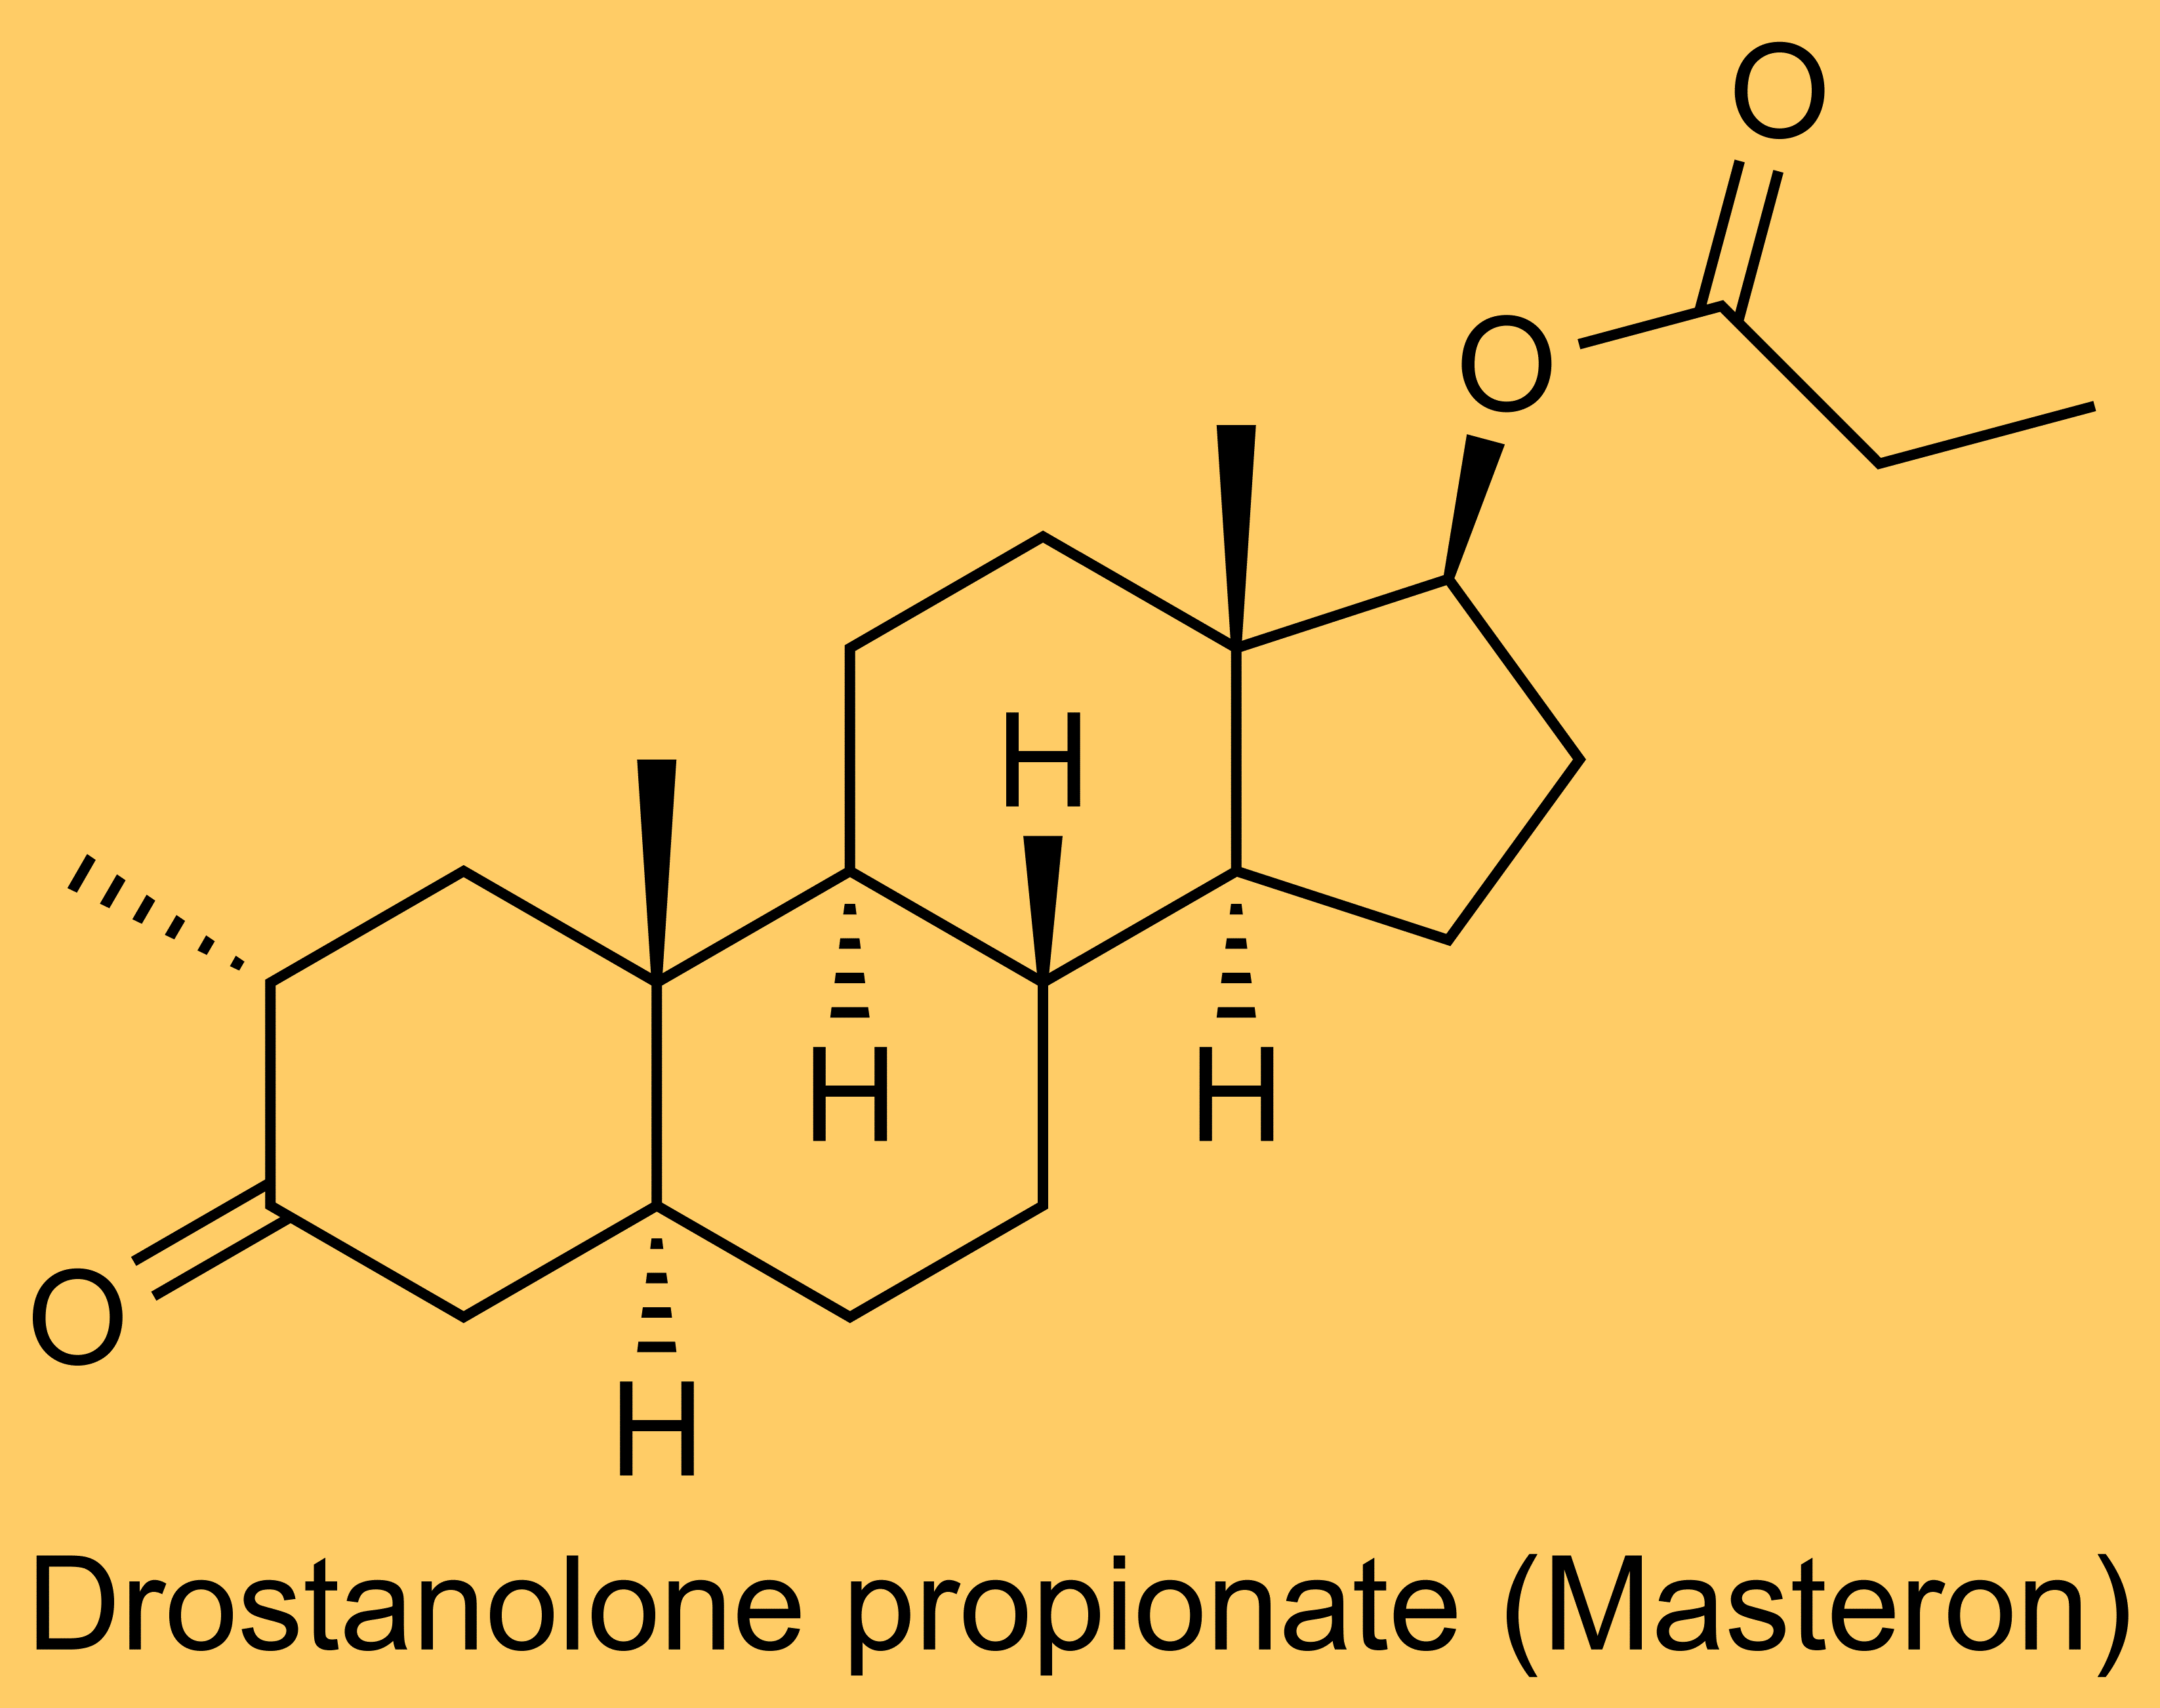 drostanolone propionate vs testosterone propionate